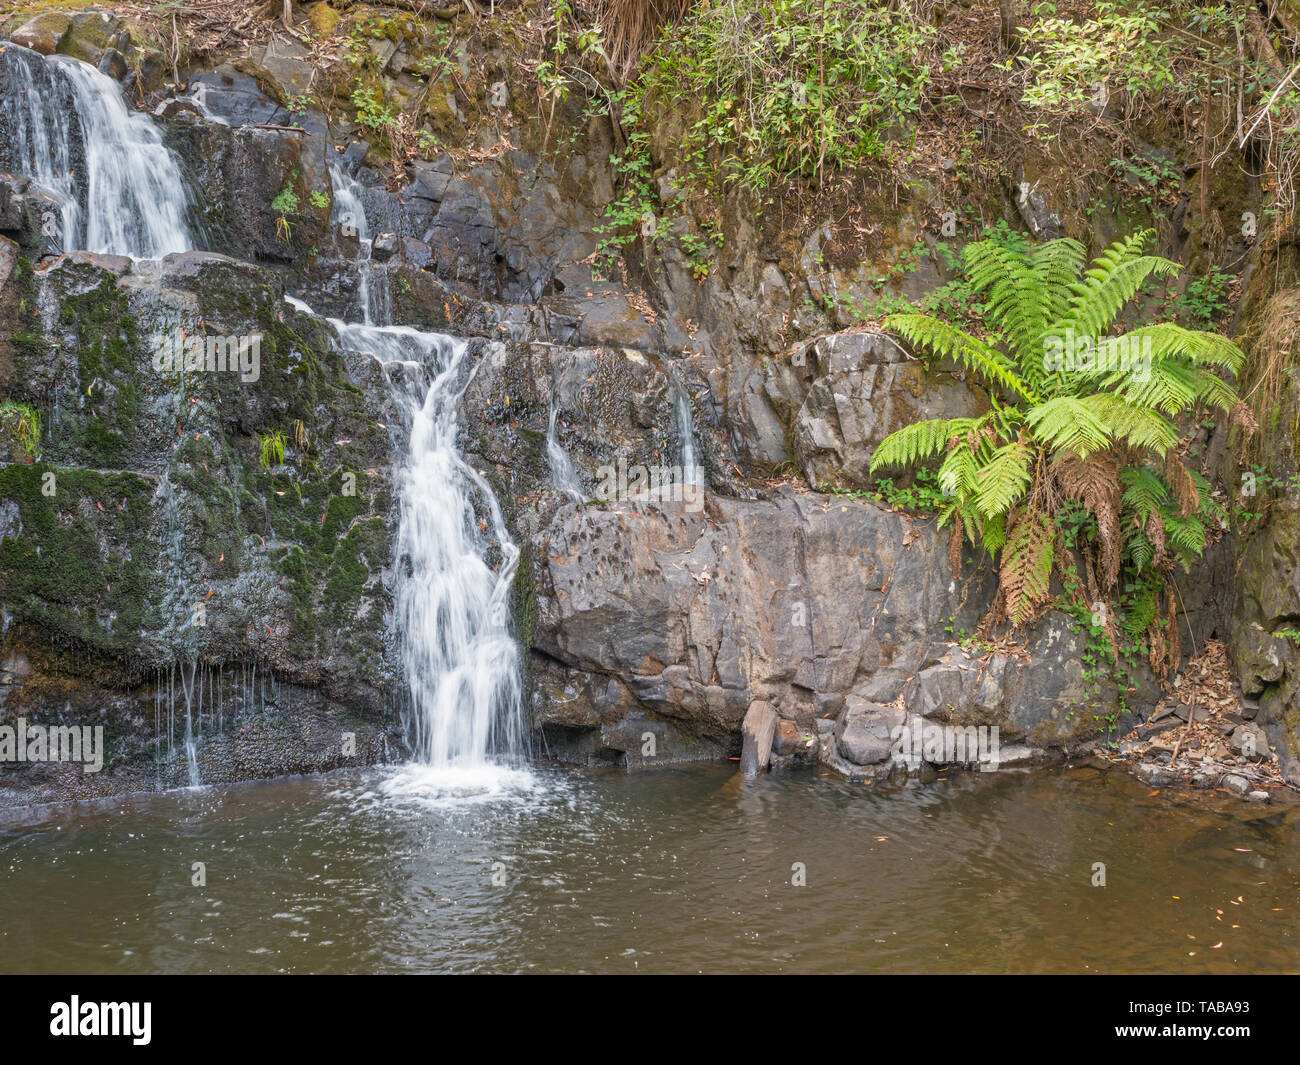 Lilydale Falls consists of two waterfalls near each other, in the Lilydale Falls Reserve near the township of Lilydale in Tasmania, Australia. Stock Photo